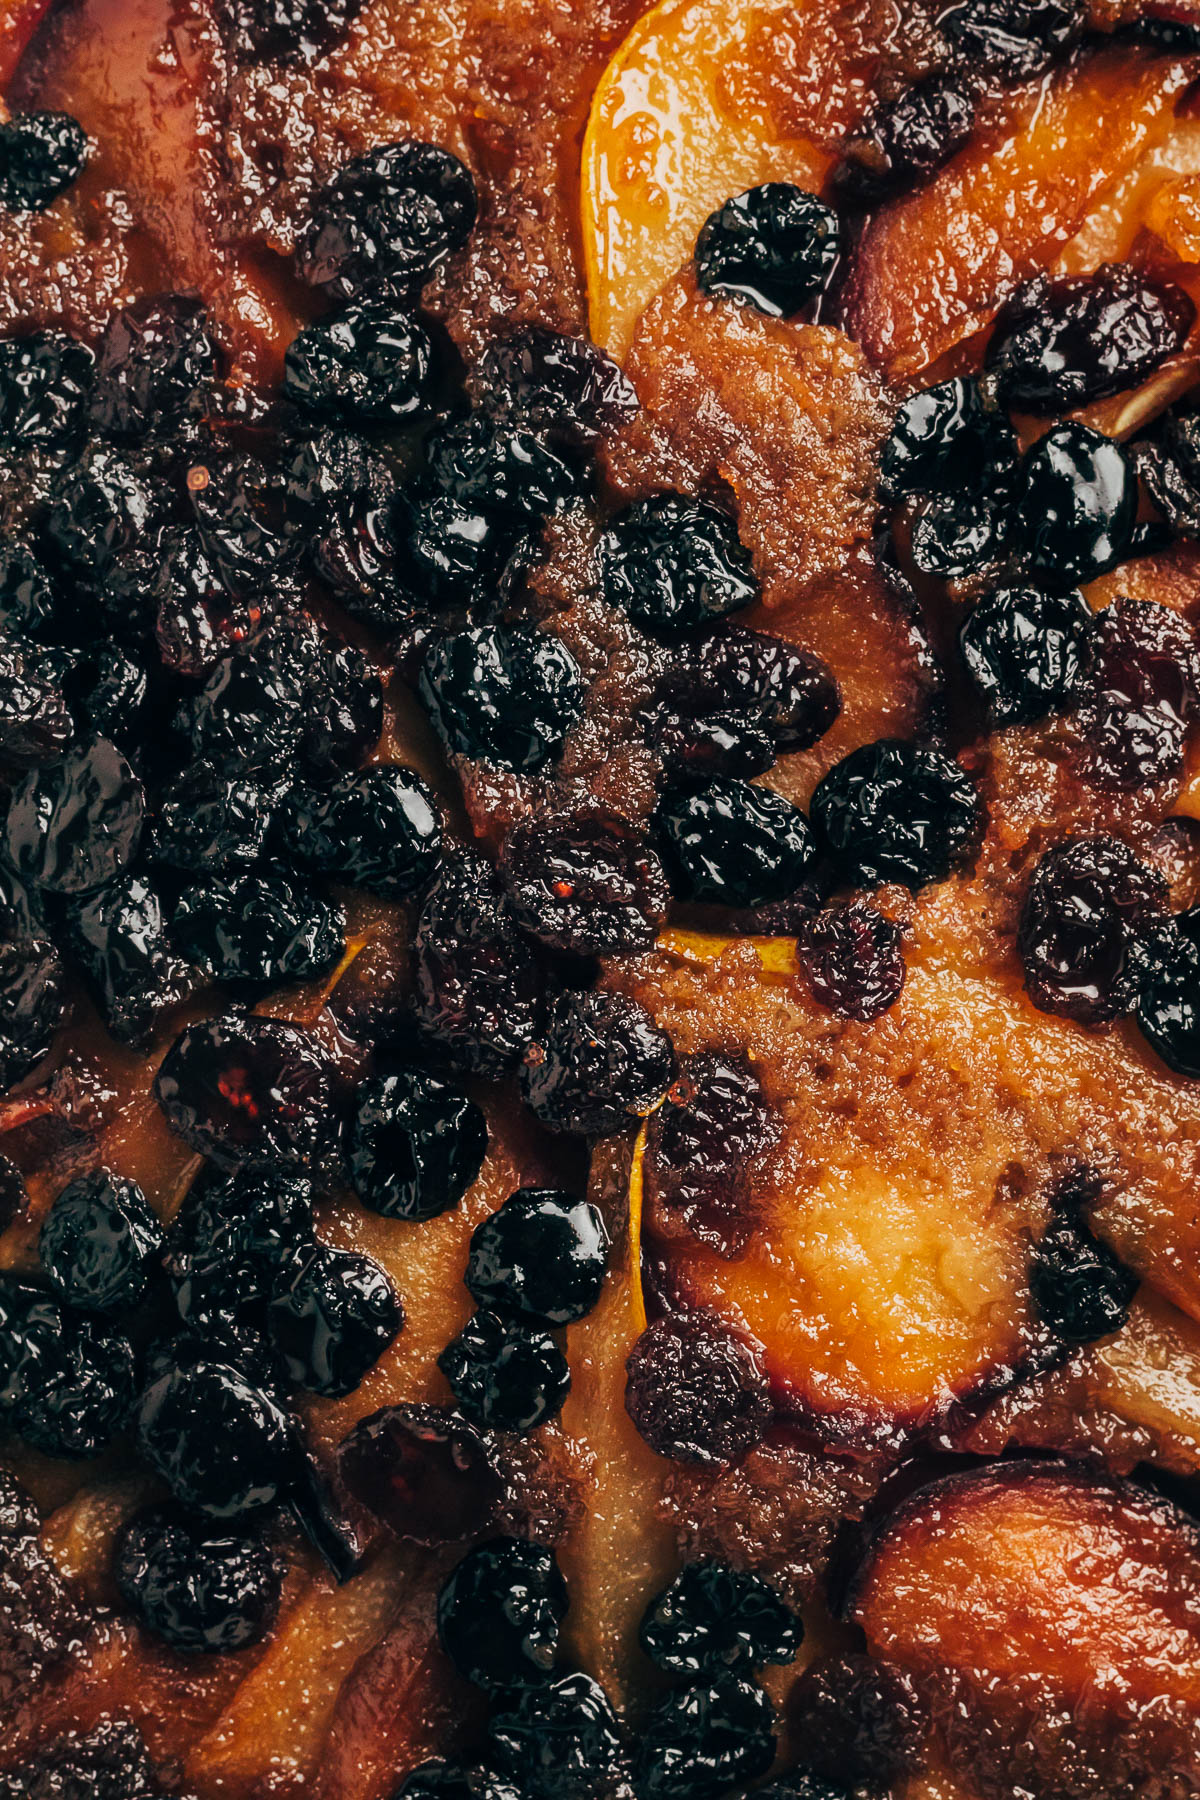 Close up of the top of a cake baked with dried fruit.